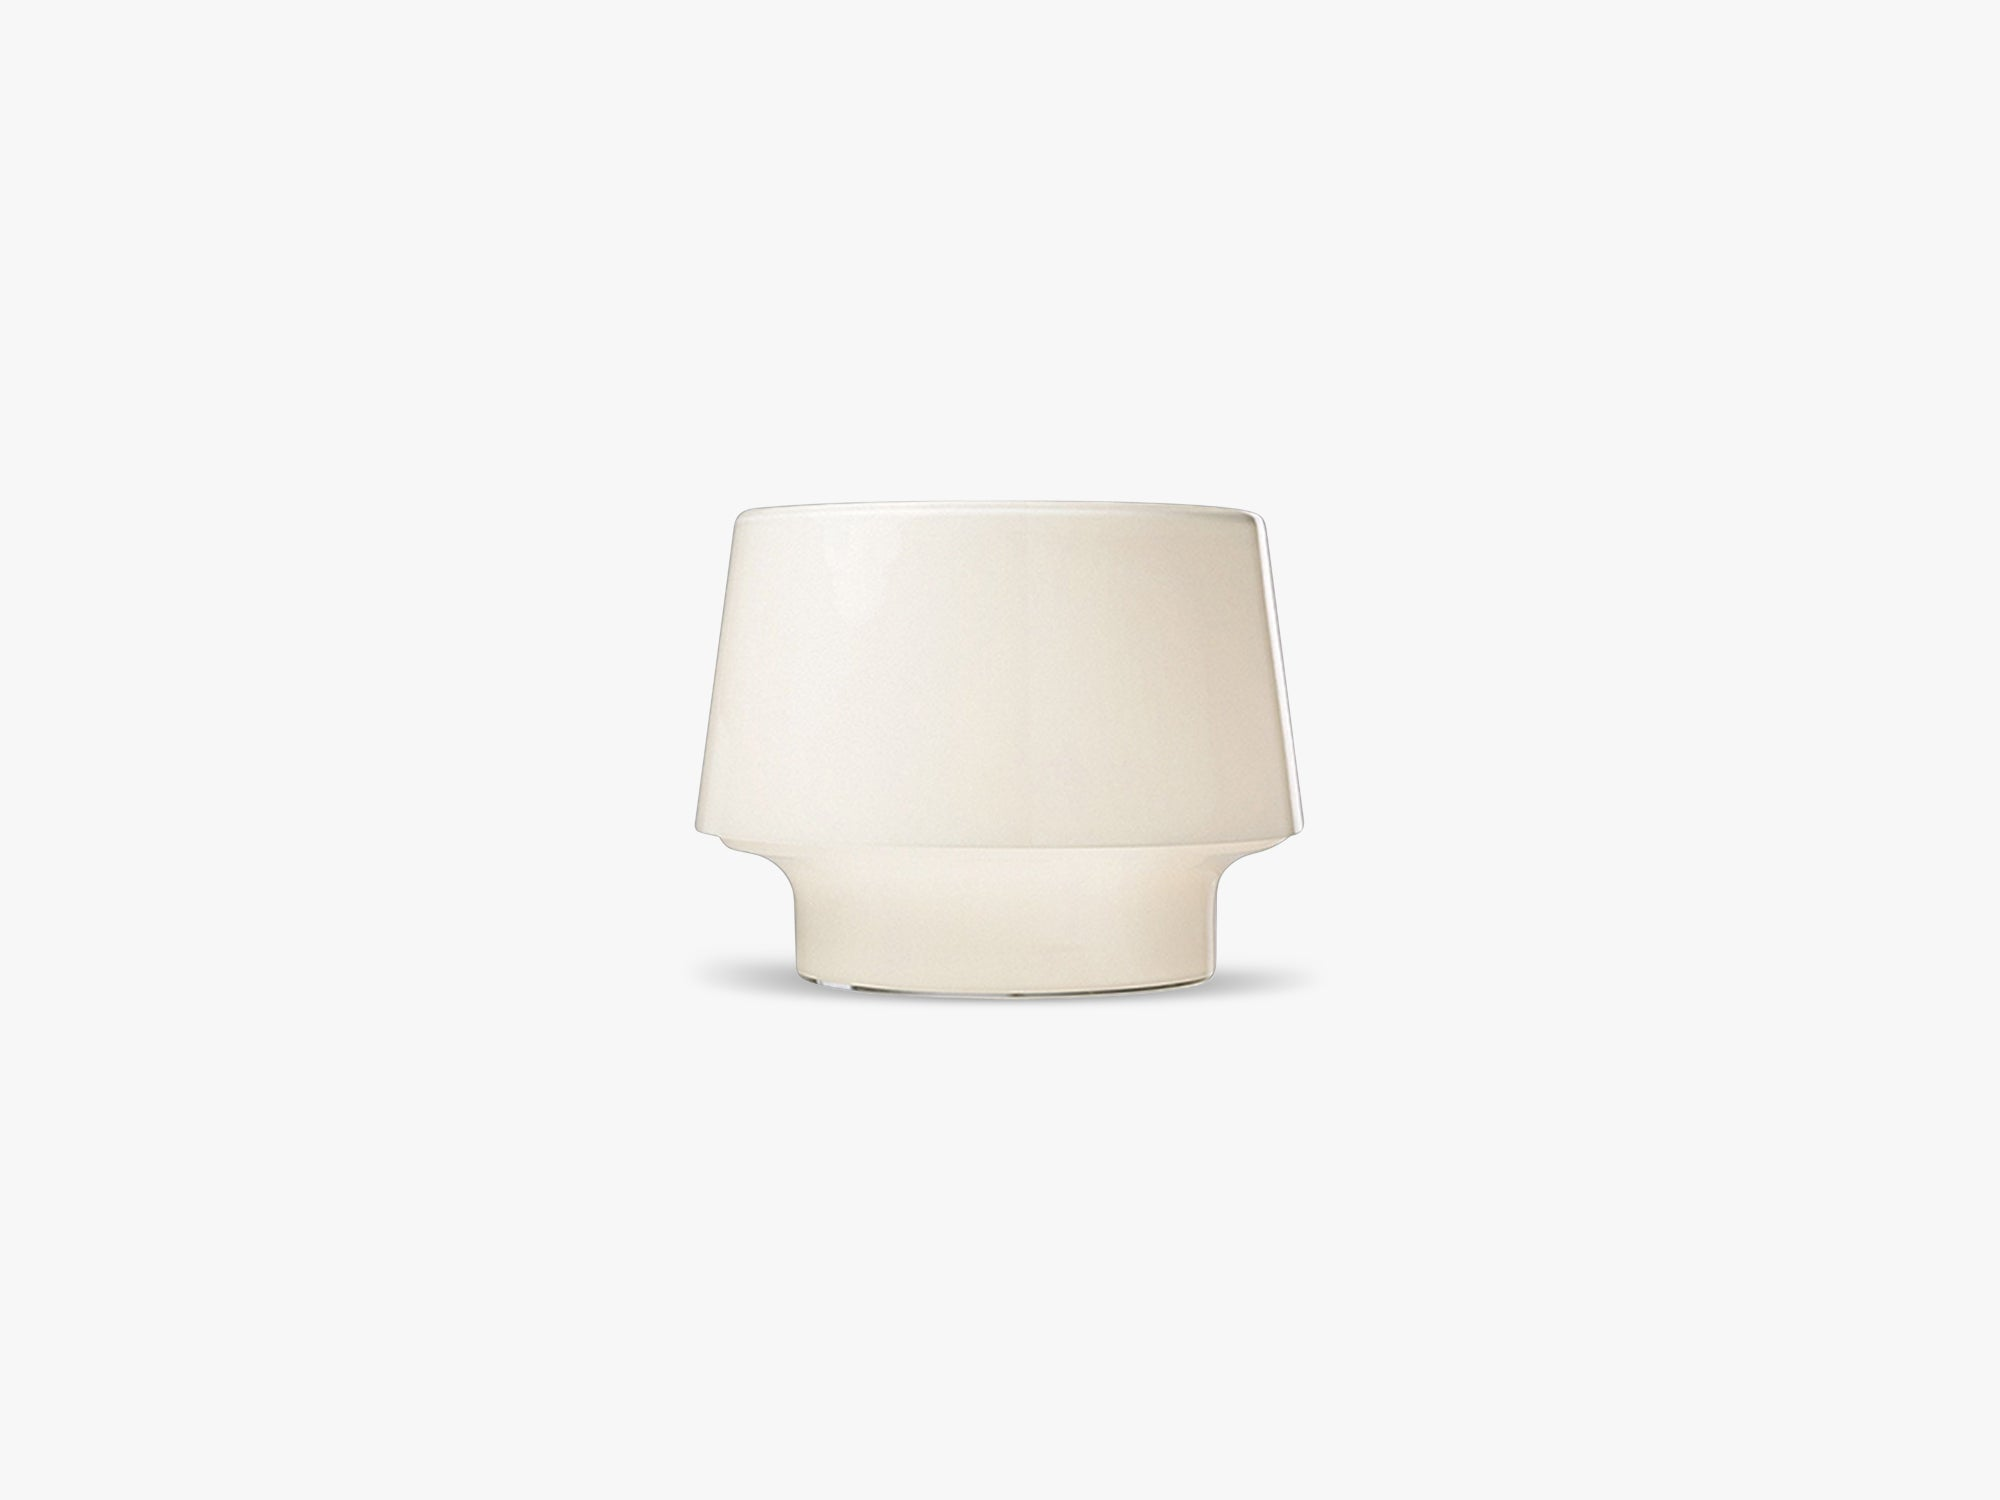 Cosy In White Table Lamp / Small, Small - White fra Muuto